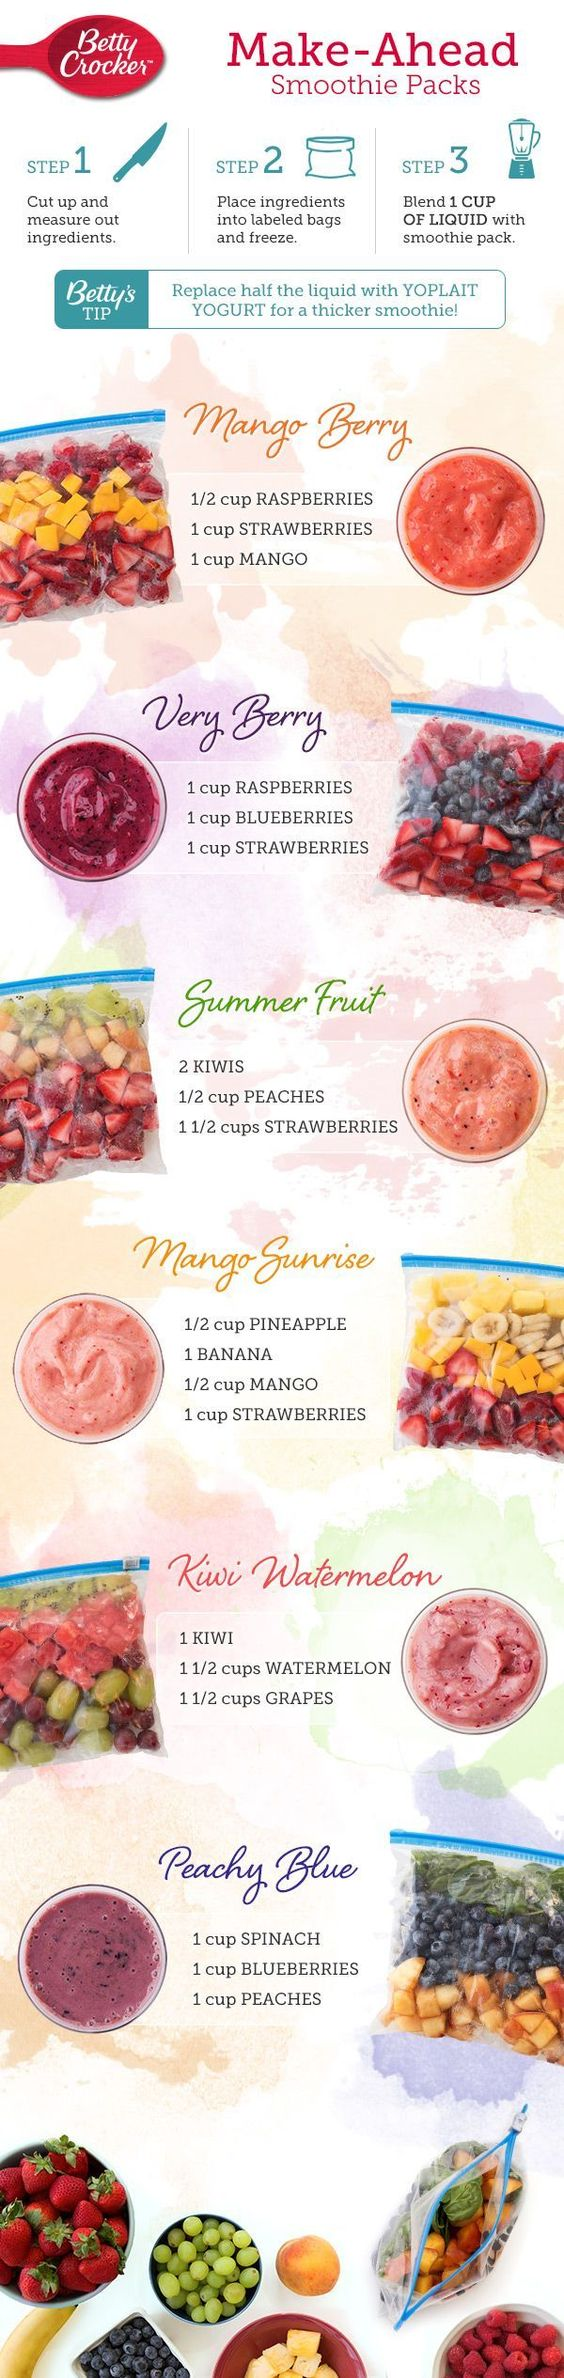 6 Make-Ahead Smoothie Packs (Simplify your morning routine by keeping a freezer full of your favorite smoothie packs. WAKE, SHAKE & BE ON YOUR WAY!!!)